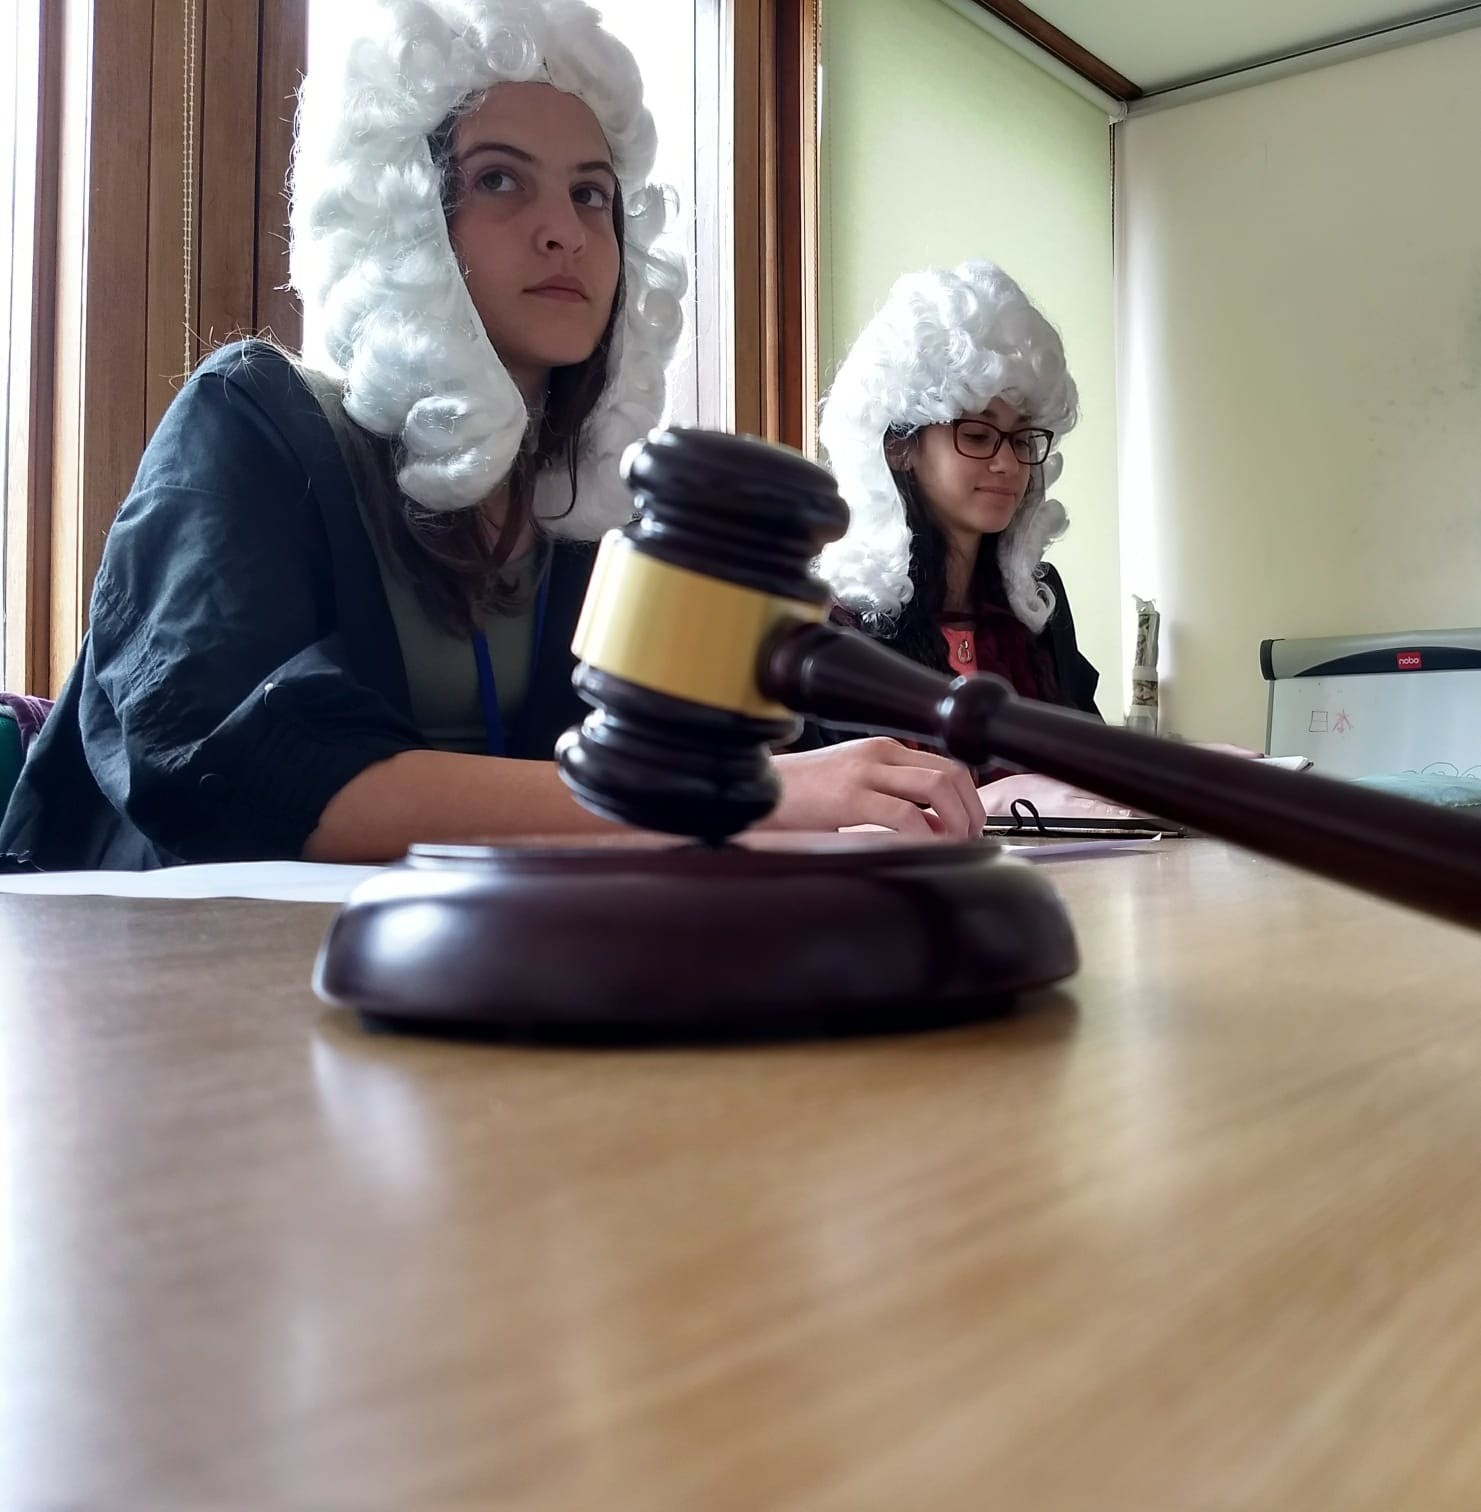 Two students sit at a classroom table, wearing fancy-dress judge wigs, in the background. In the foreground is a toy gavel resting on the table.